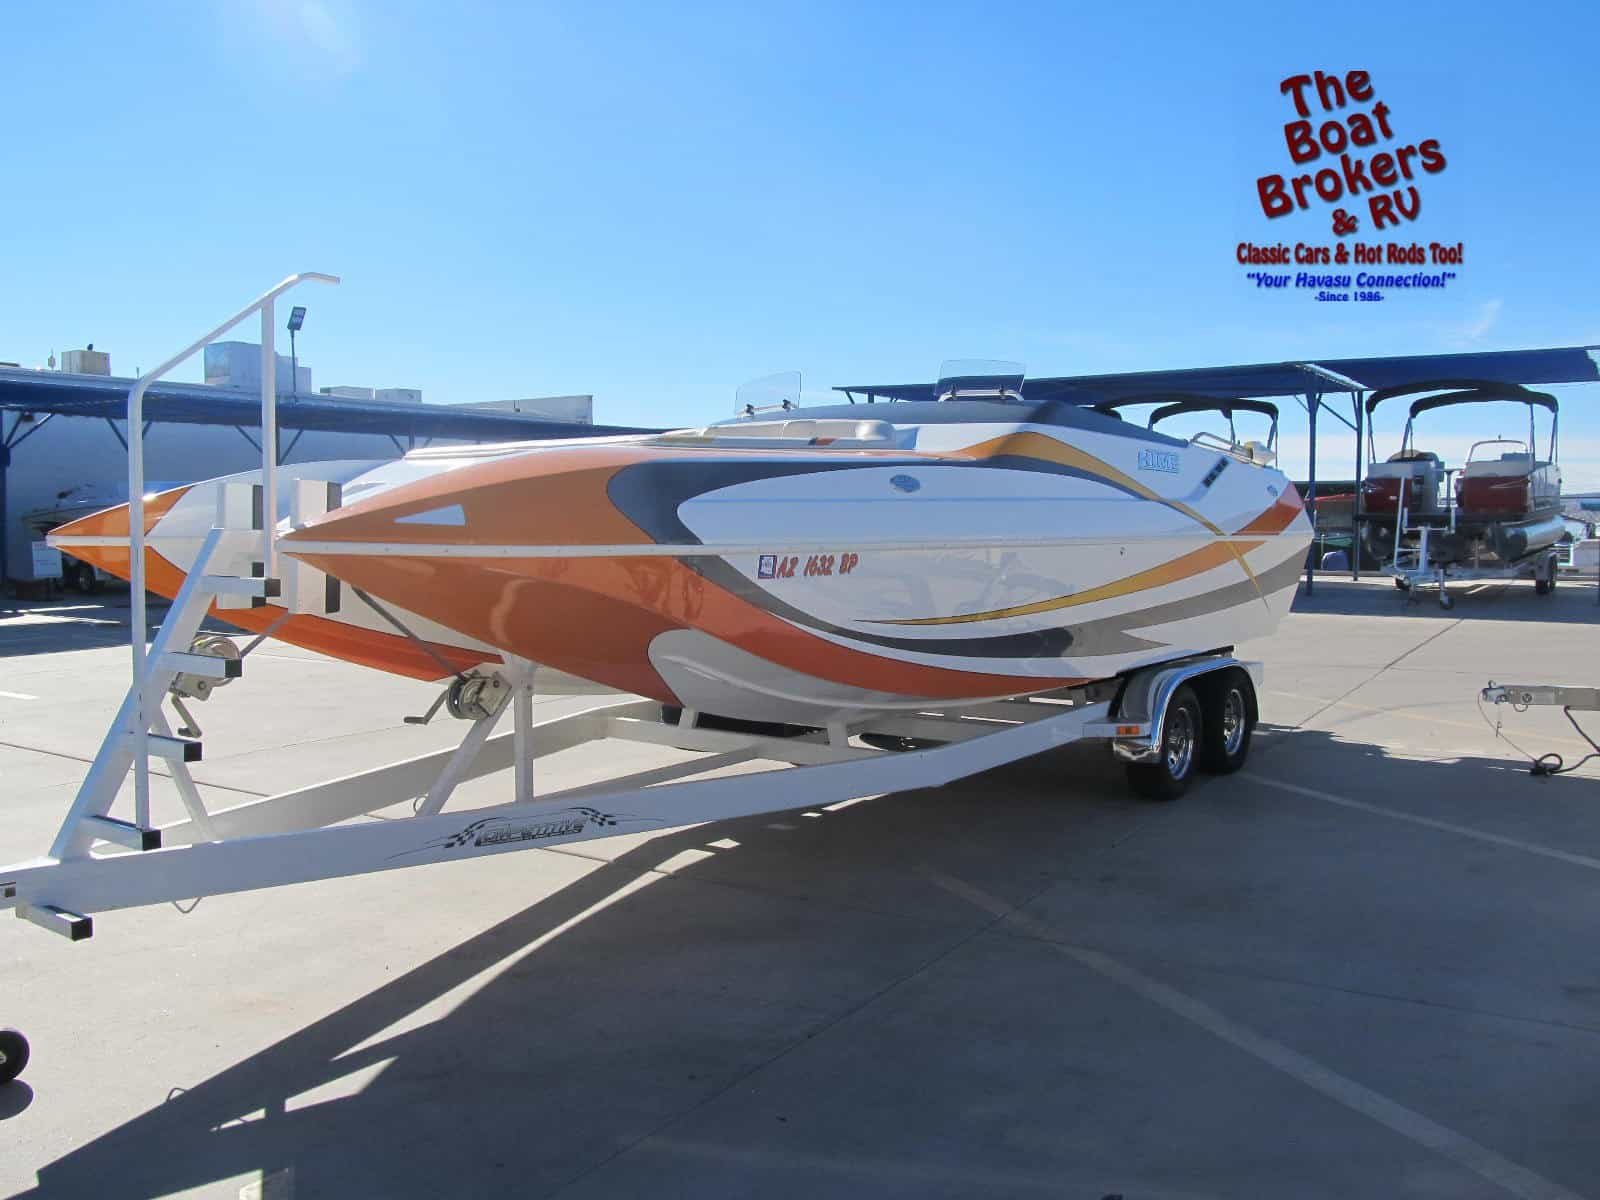 Ice boat new and used boats for sale in us for Ice scratcher boat motor for sale